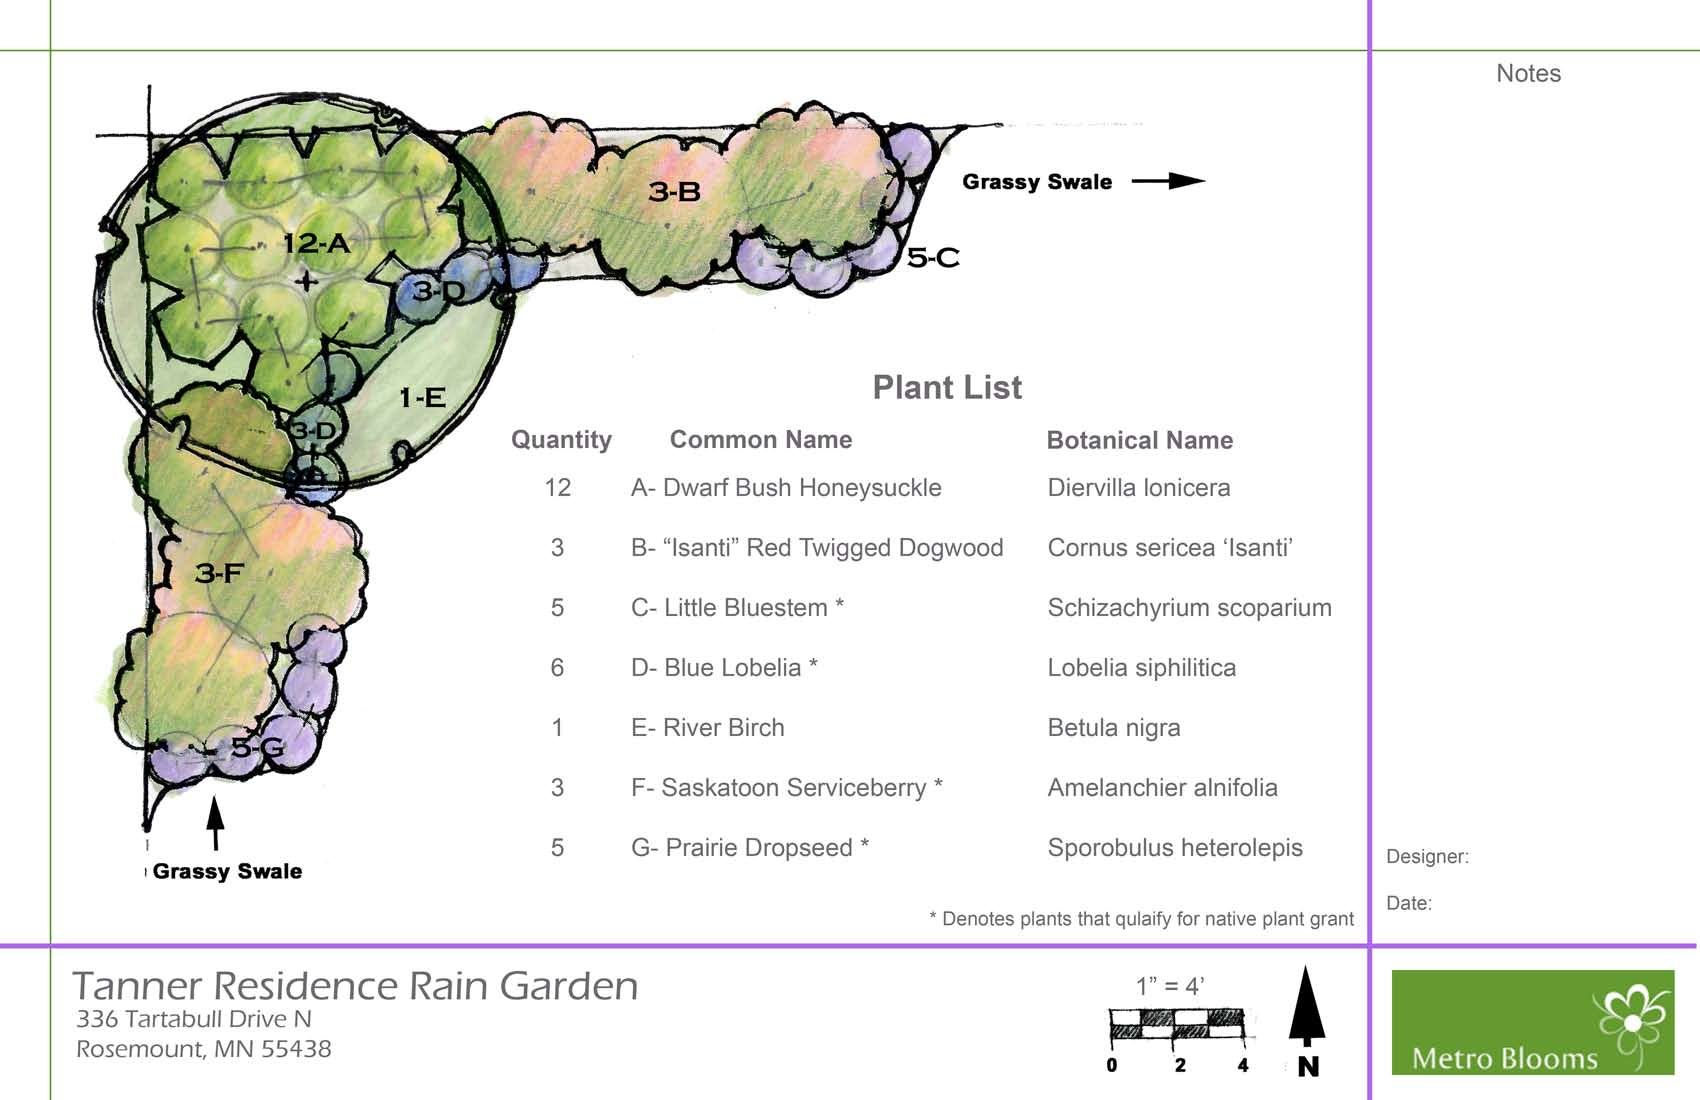 Great RAIN GARDEN DESIGN PLAN; Following Your Onsite Consultation Metro Blooms  Landscape Design Assistant Will Create Nice Ideas